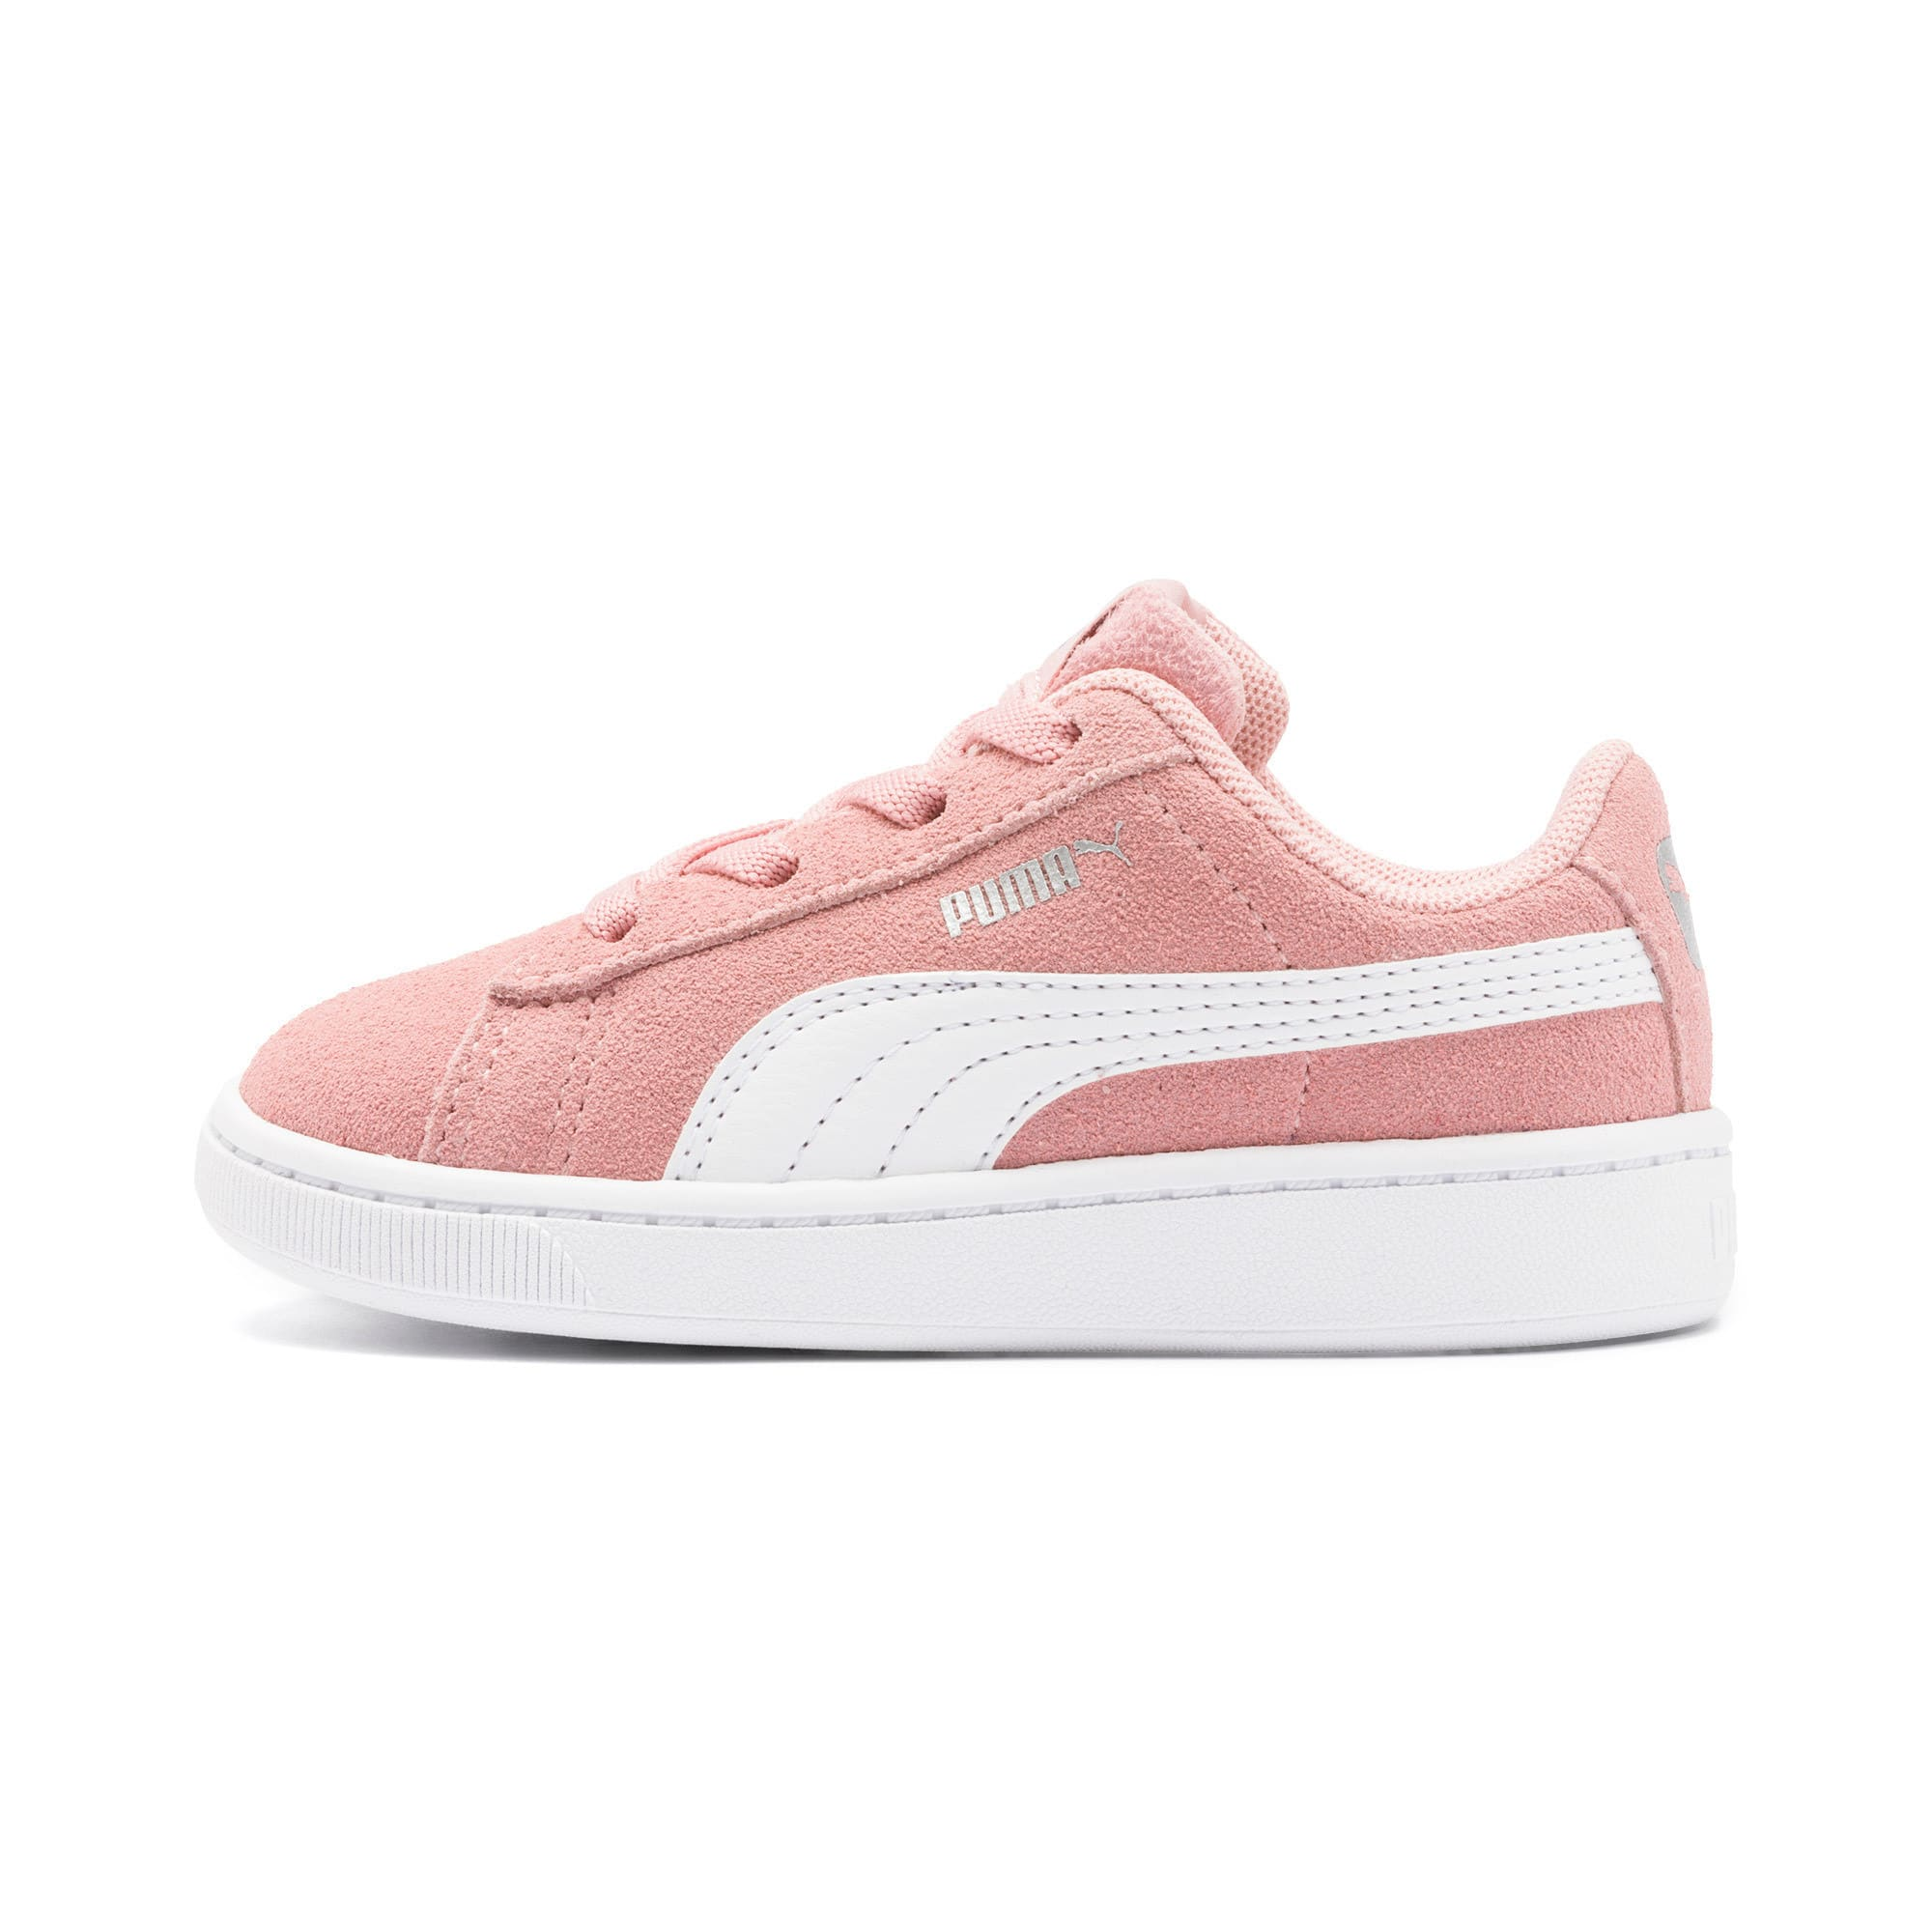 Thumbnail 1 of PUMA Vikky v2 Suede AC Sneakers INF, Bridal Rose-White-Silver, medium